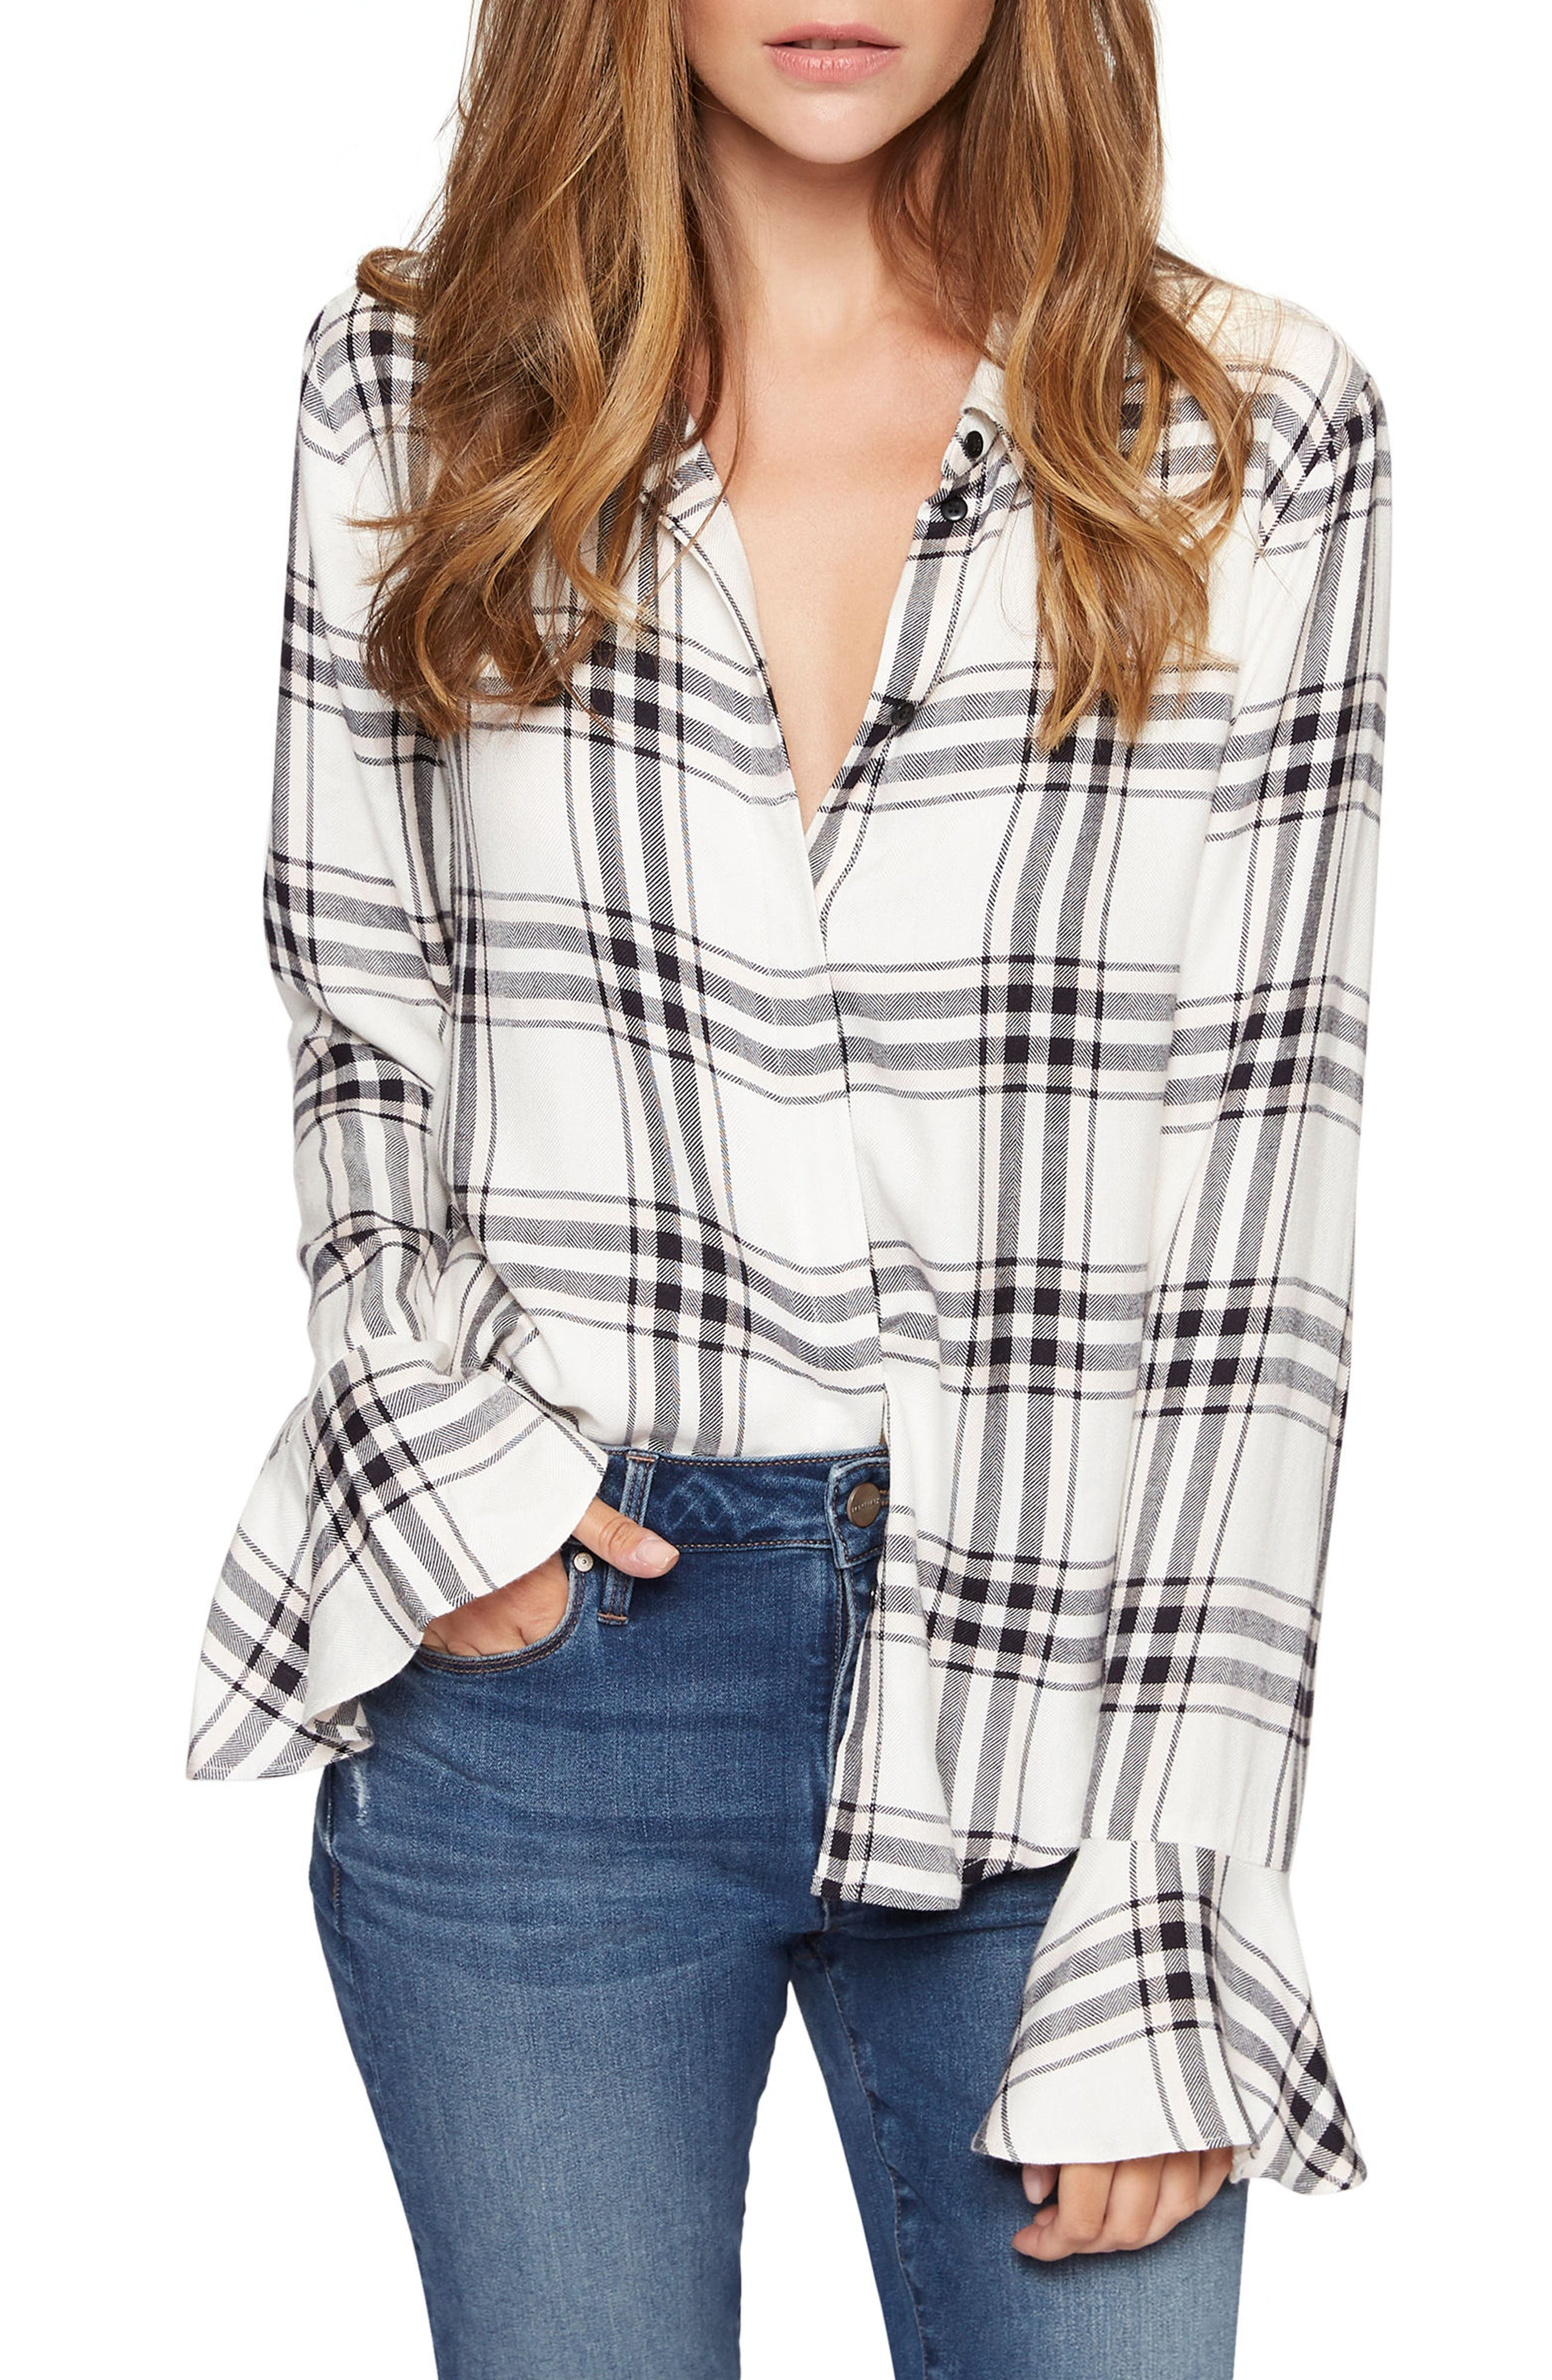 Nightscape Plaid Ruffle Cuff Shirt,                             Main thumbnail 1, color,                             Town And Country Plaid